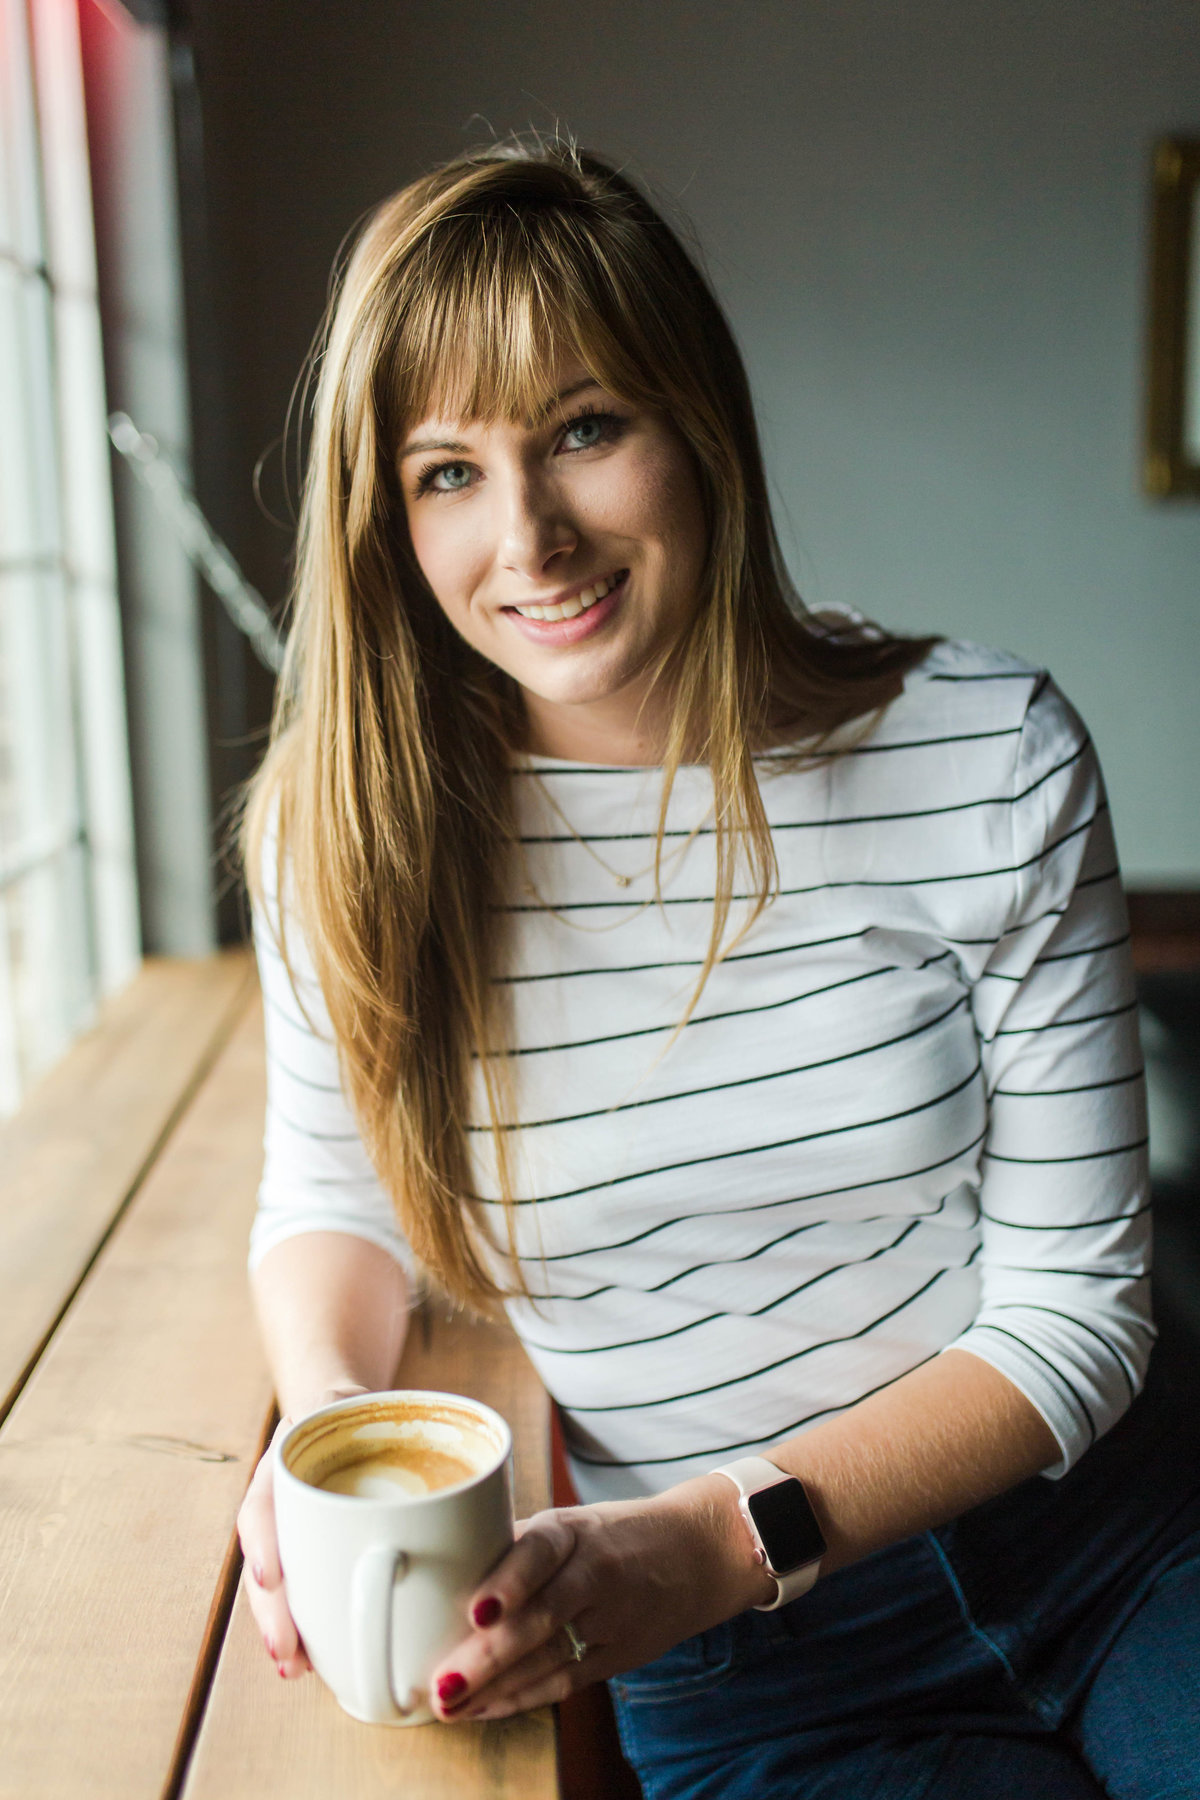 bridgewater-coffee-shop-headshot-portrait-session-jackie-asbell-26